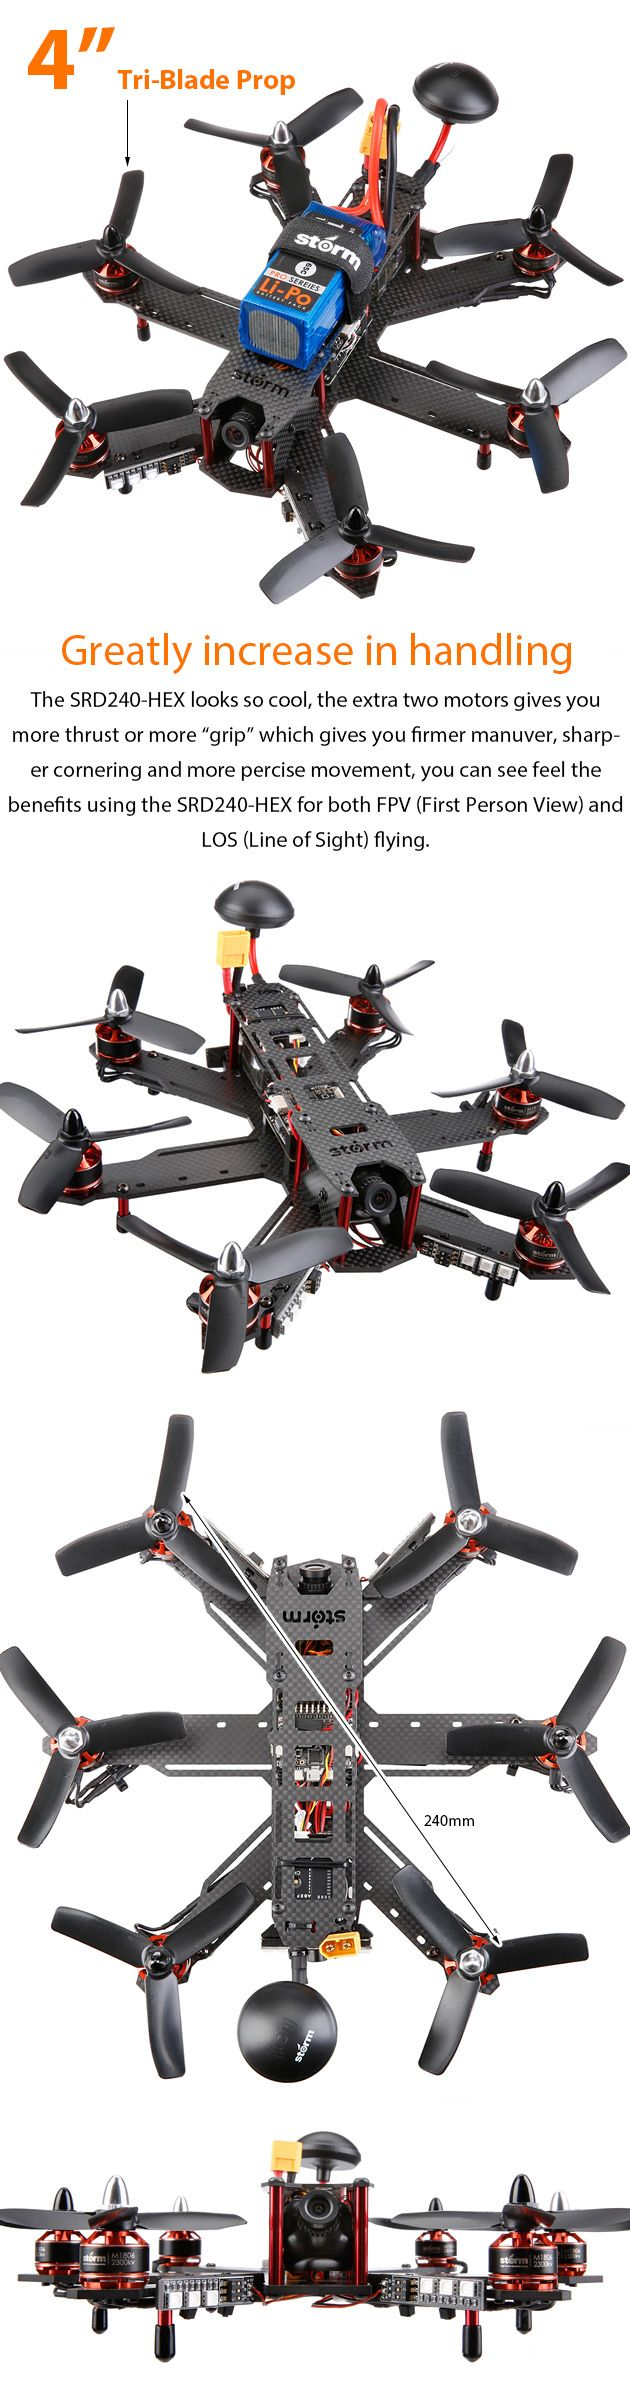 144 best Drones images on Pinterest | Drones, Technology and Bricolage